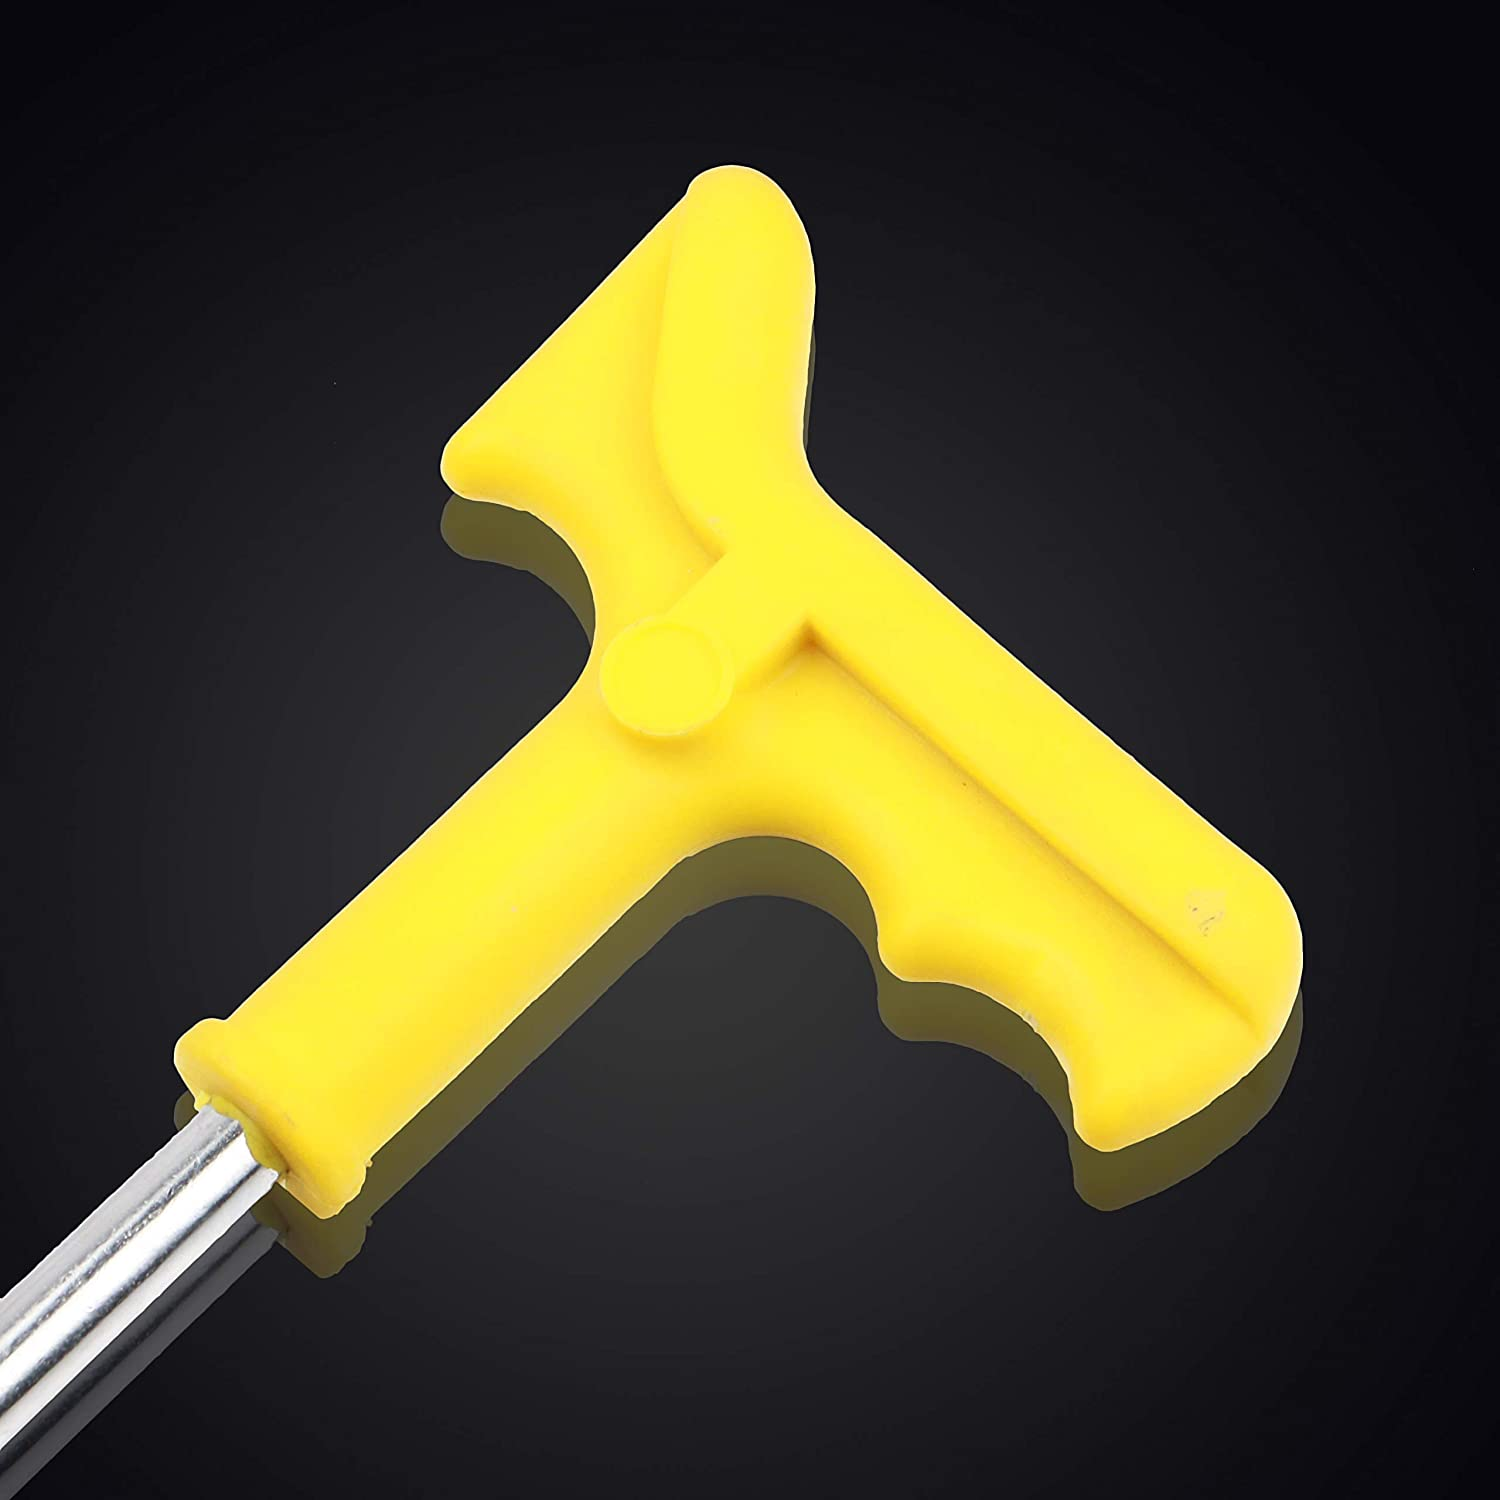 Spurtar Universal 16MM Spark Plug Tool Socket with Additional Protection Spring Yellow 16mm